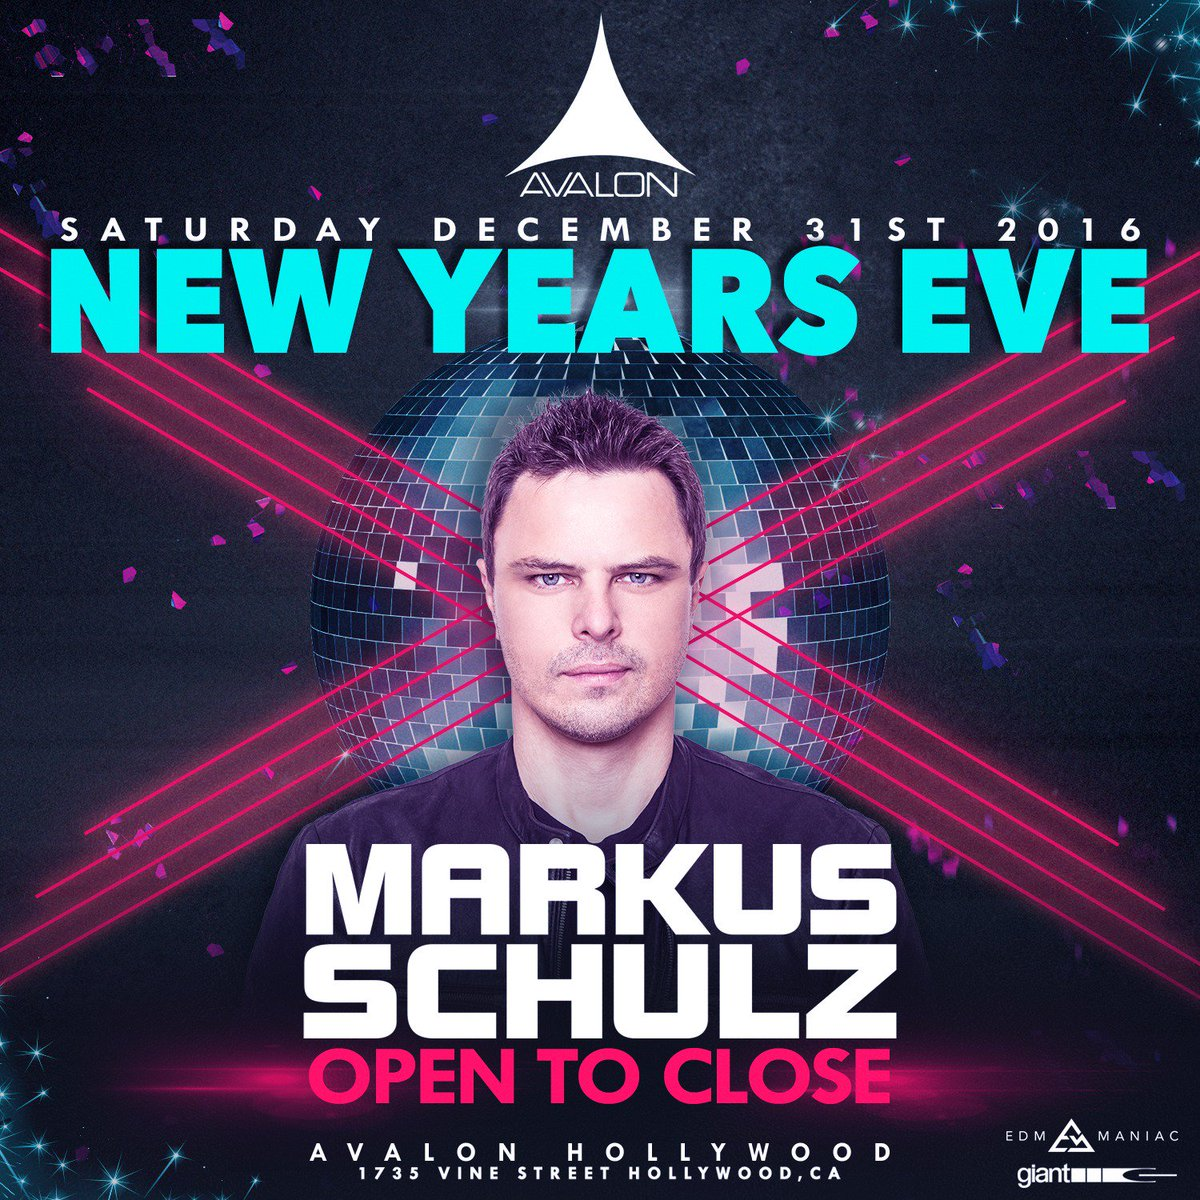 Win tix and a bottle of champagne for #NYE with .@MarkusSchulz via @EDMManiac! https://t.co/RxAc14hJ4N https://t.co/j73iAkmL04